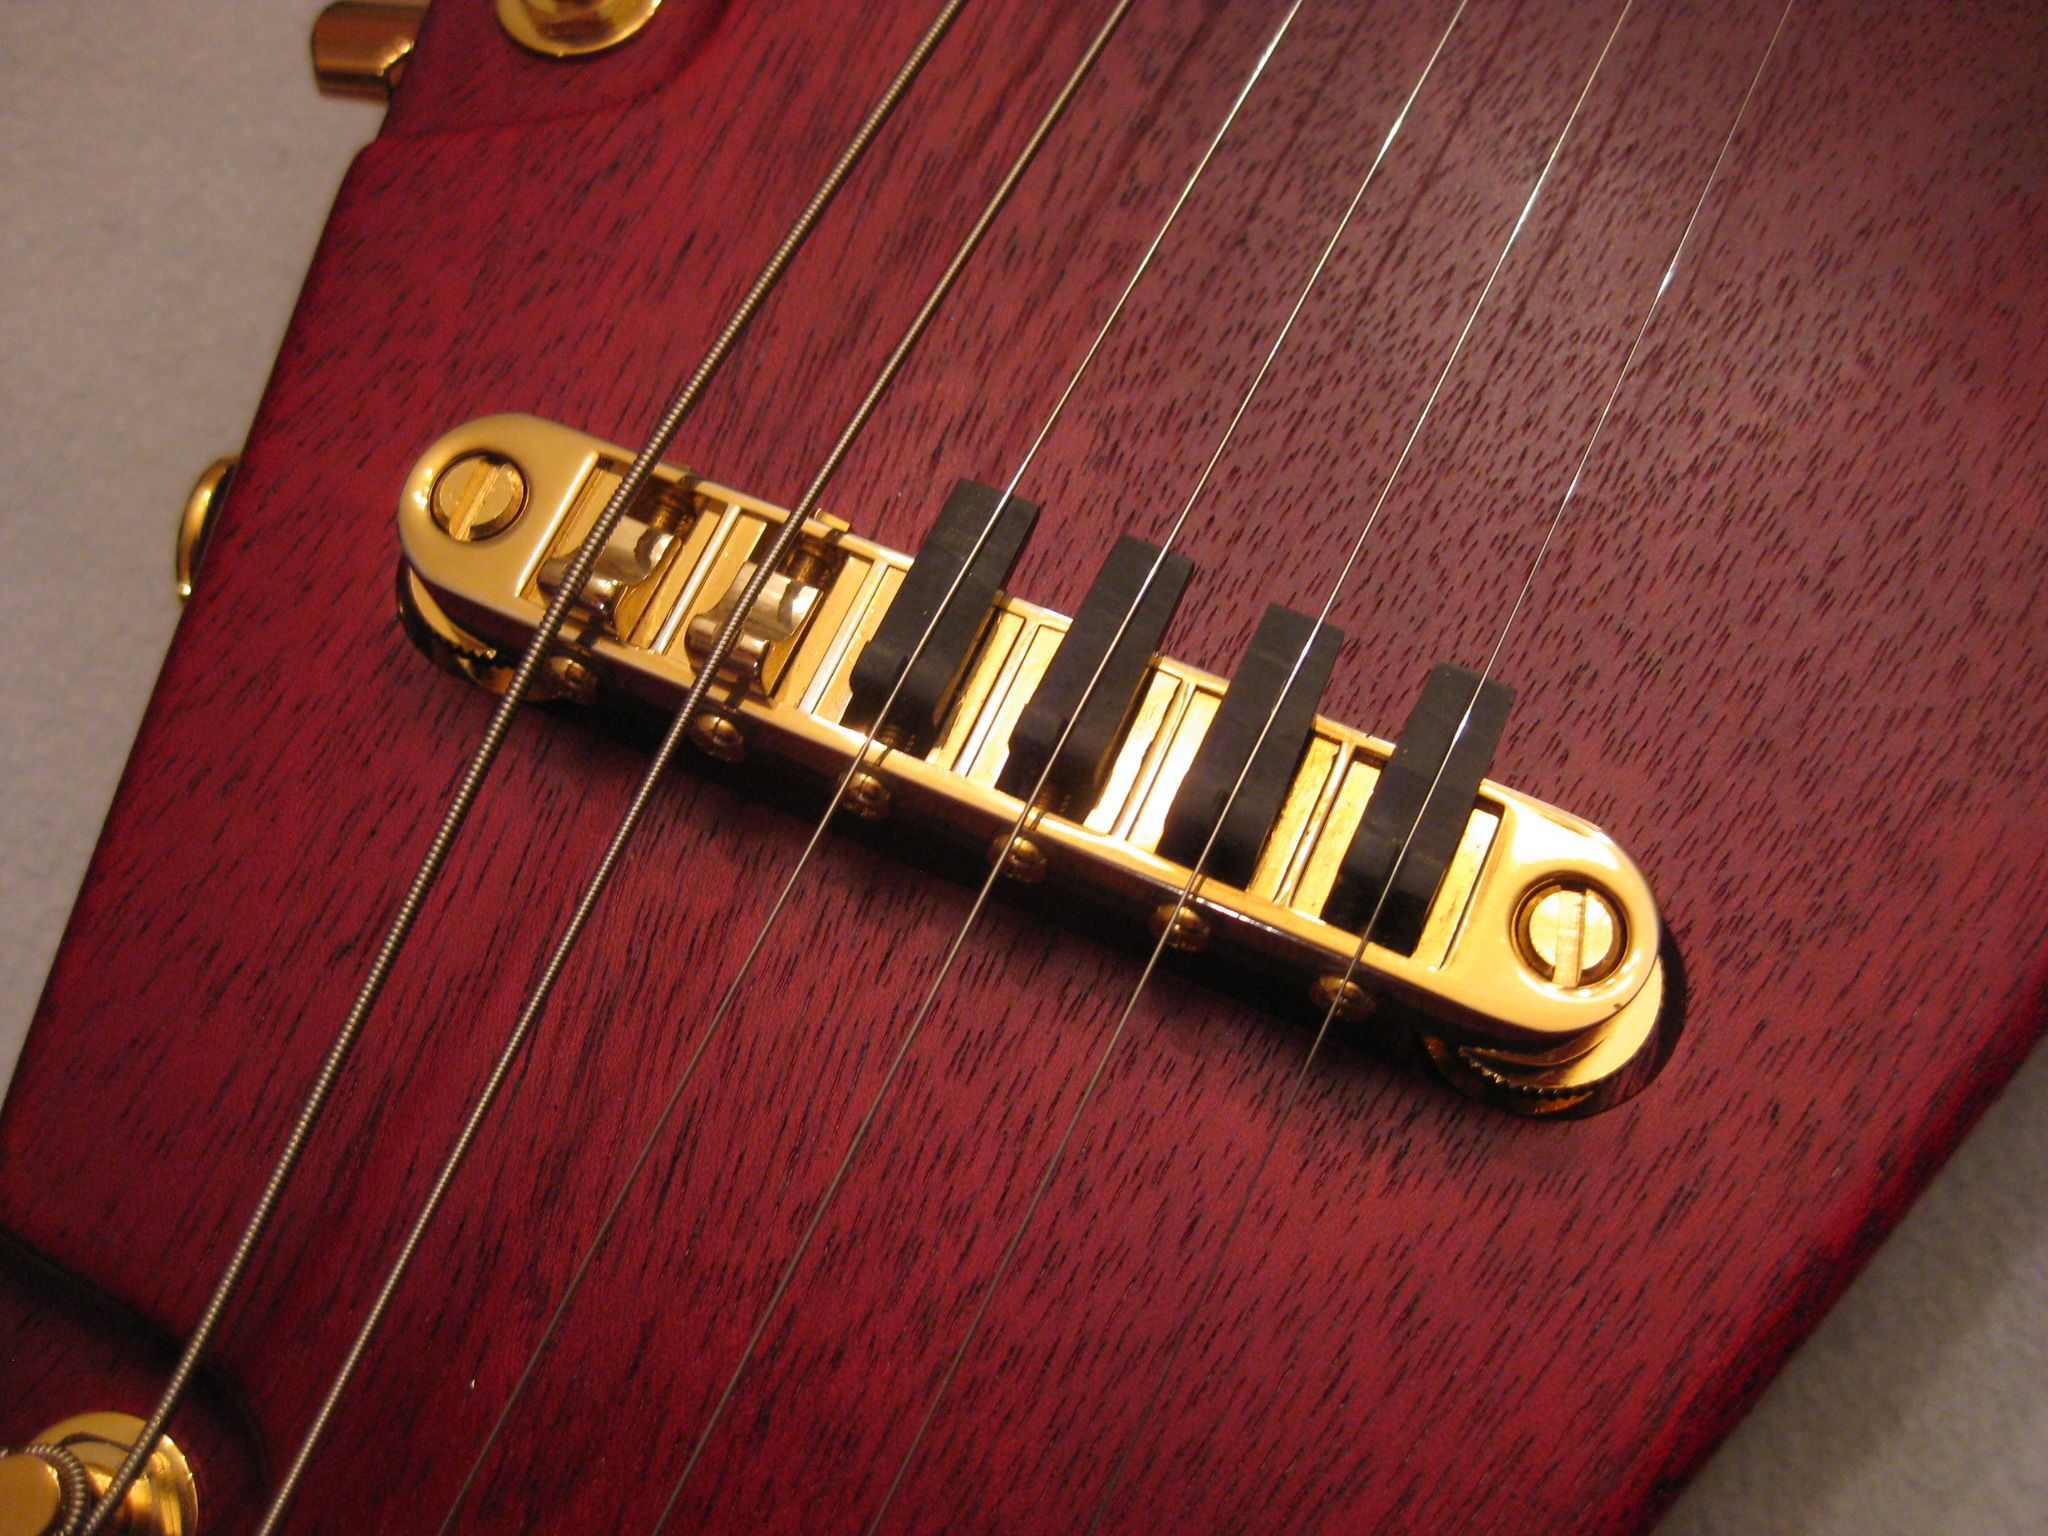 Sitar Bridge By Tim Donahue Instruments In 2018 Pinterest 5039s And Modern Wiring Style Diagram From Http Wwwmylespaulcom Guitar Design Pattern Musical